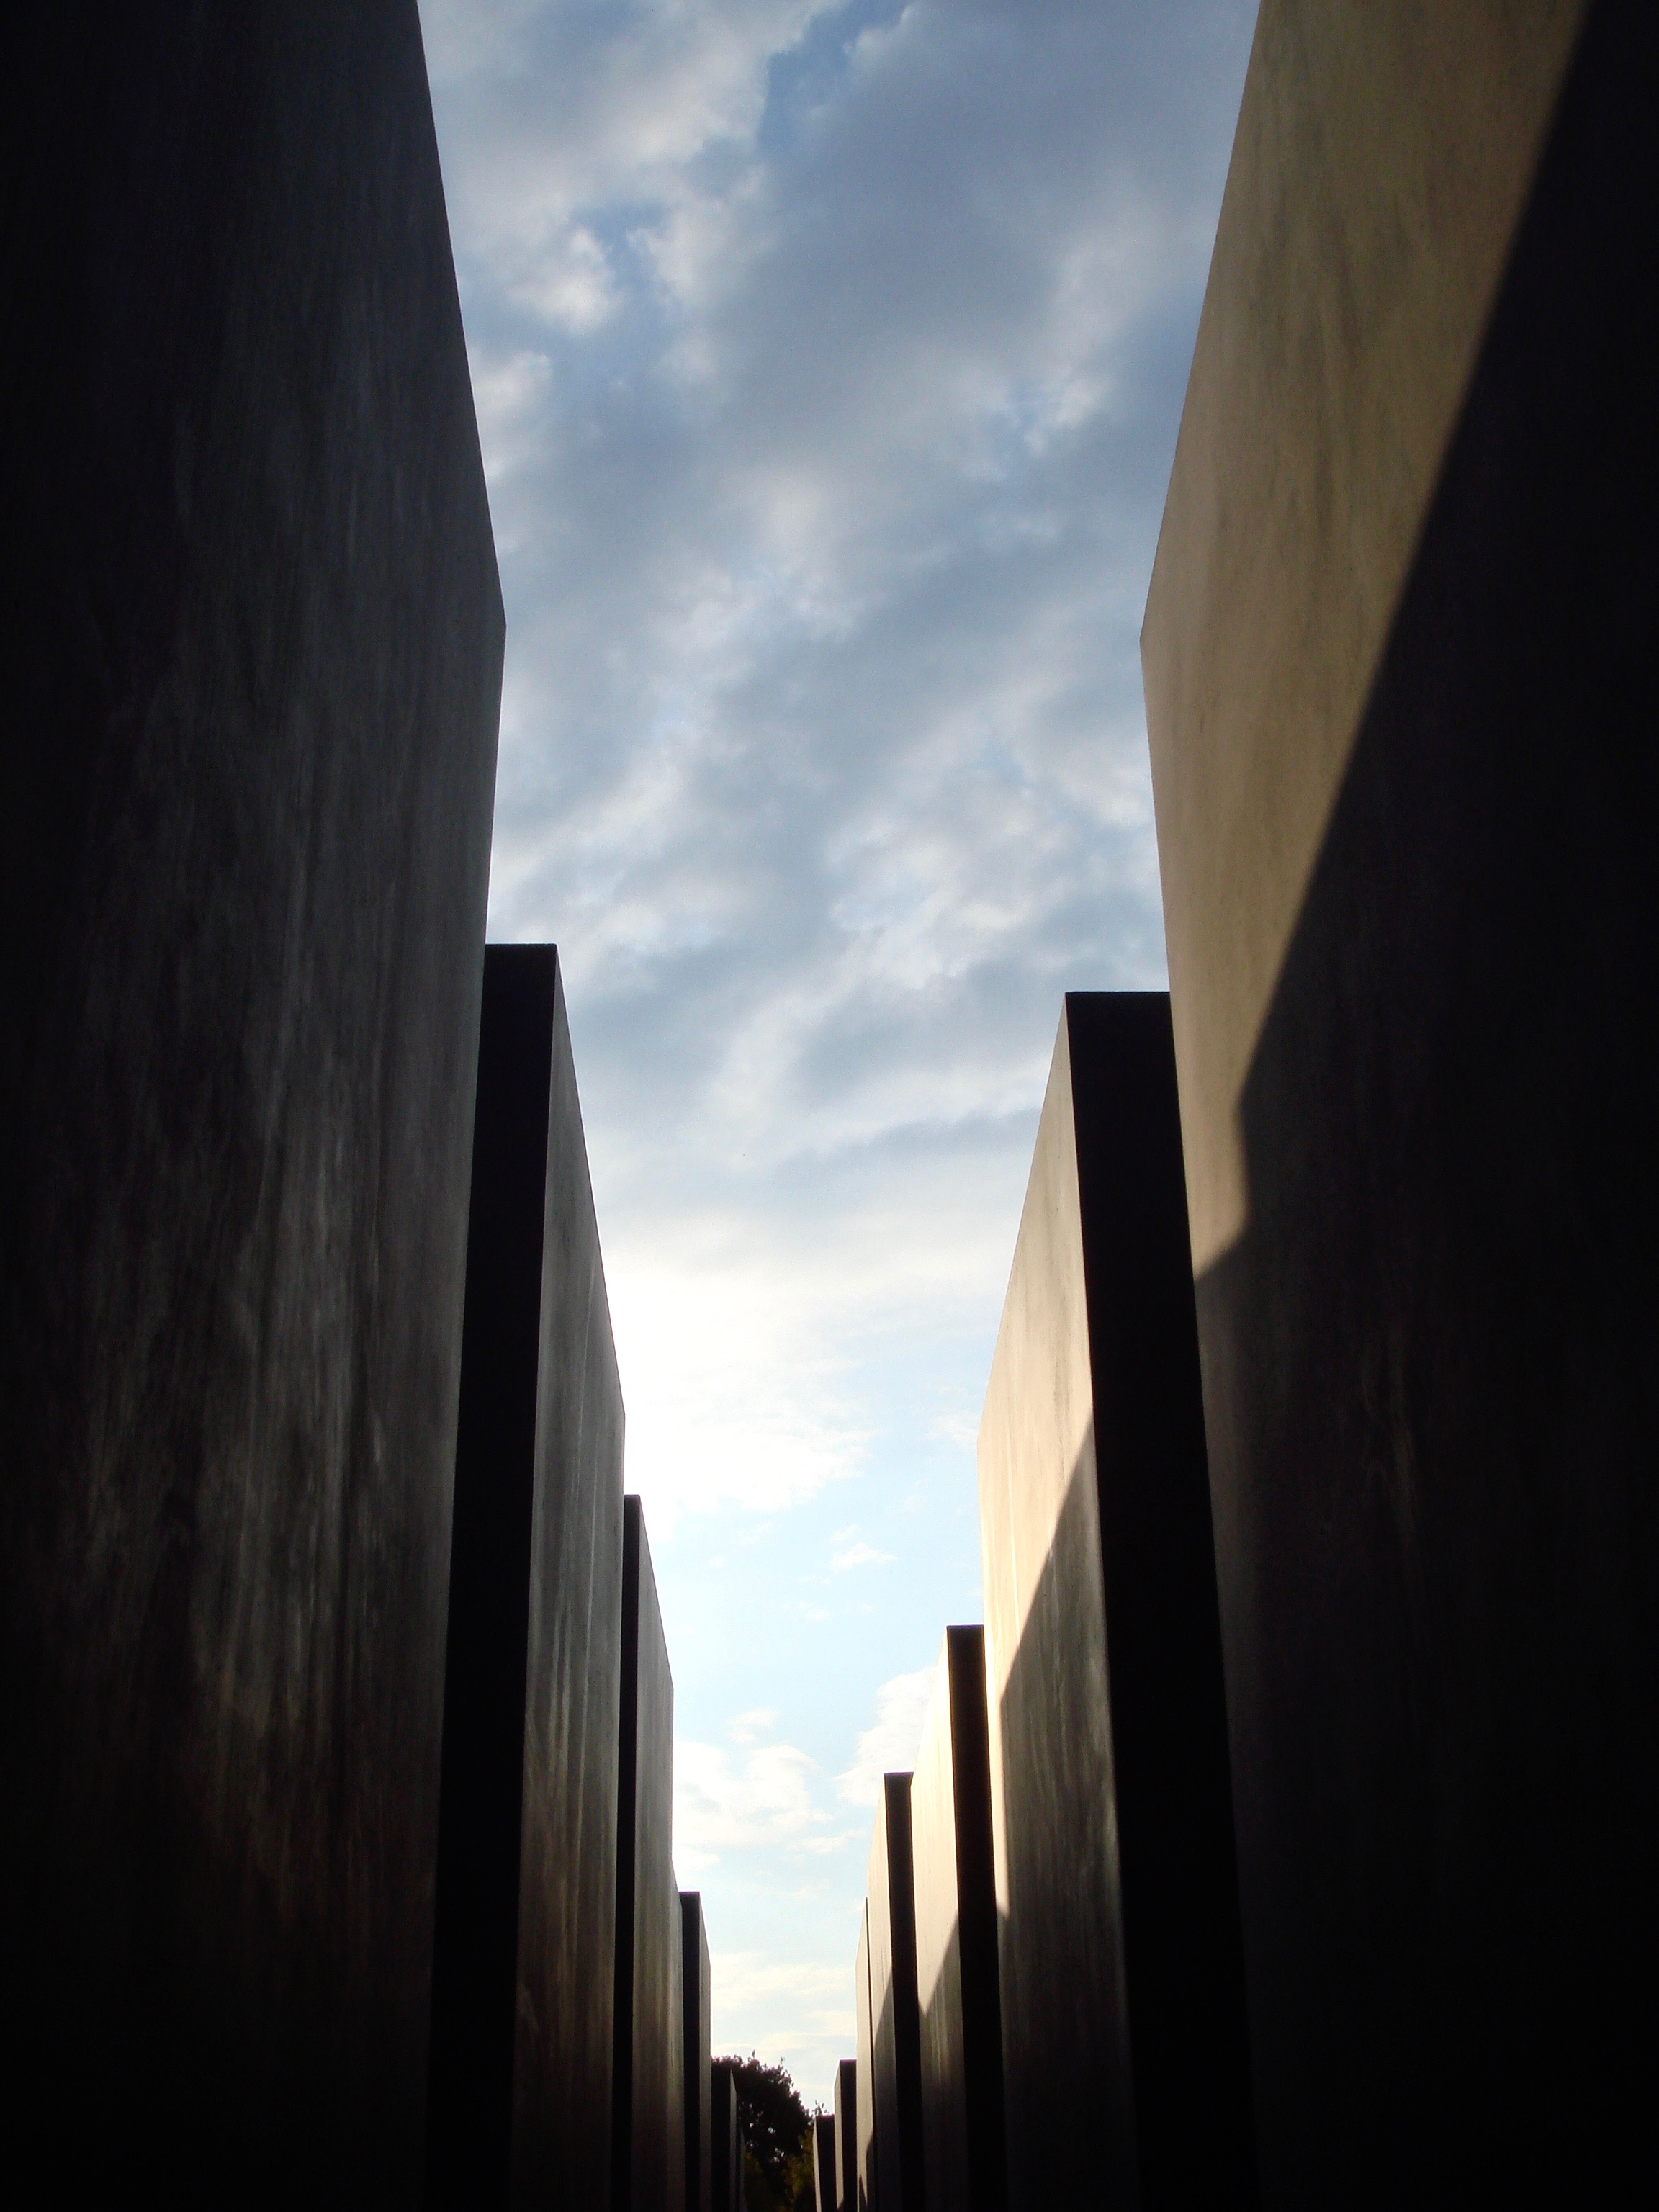 The  Memorial To The Murdered Jews of Europe  (The Holocaust Memorial) in Berlin is a disorienting field of concrete stelae